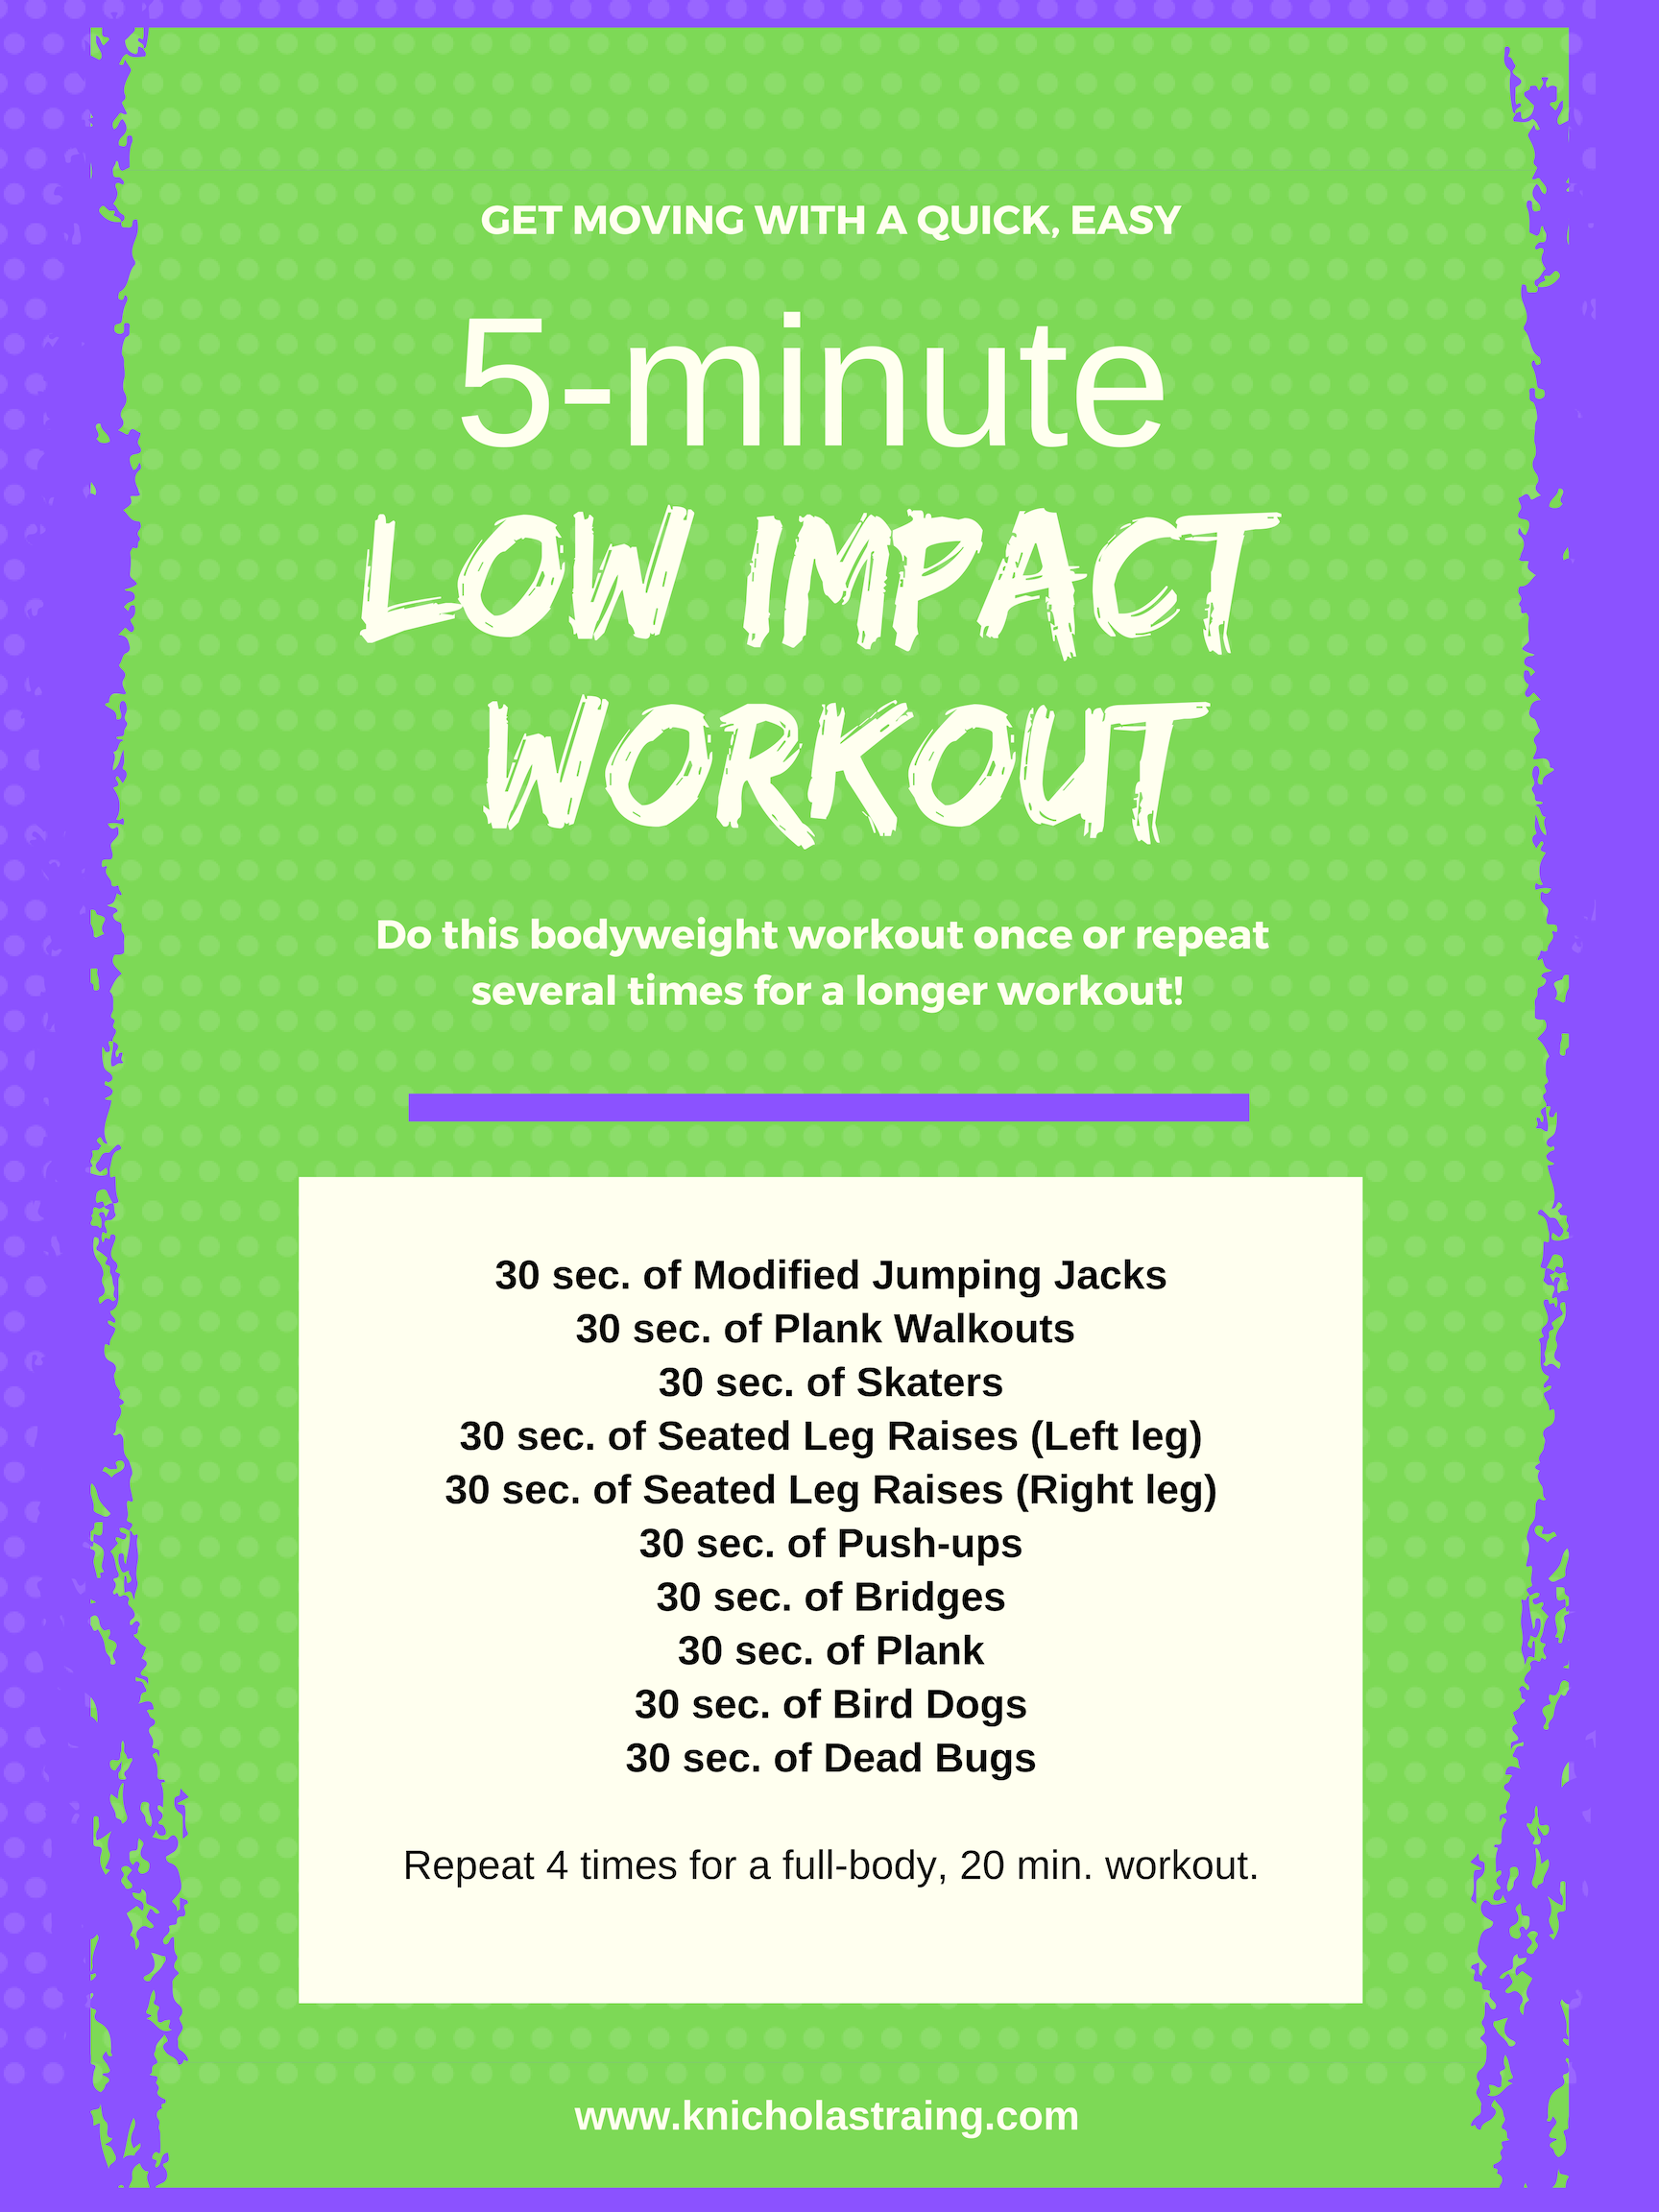 bodyweight 5 minute workout low impact v3.png